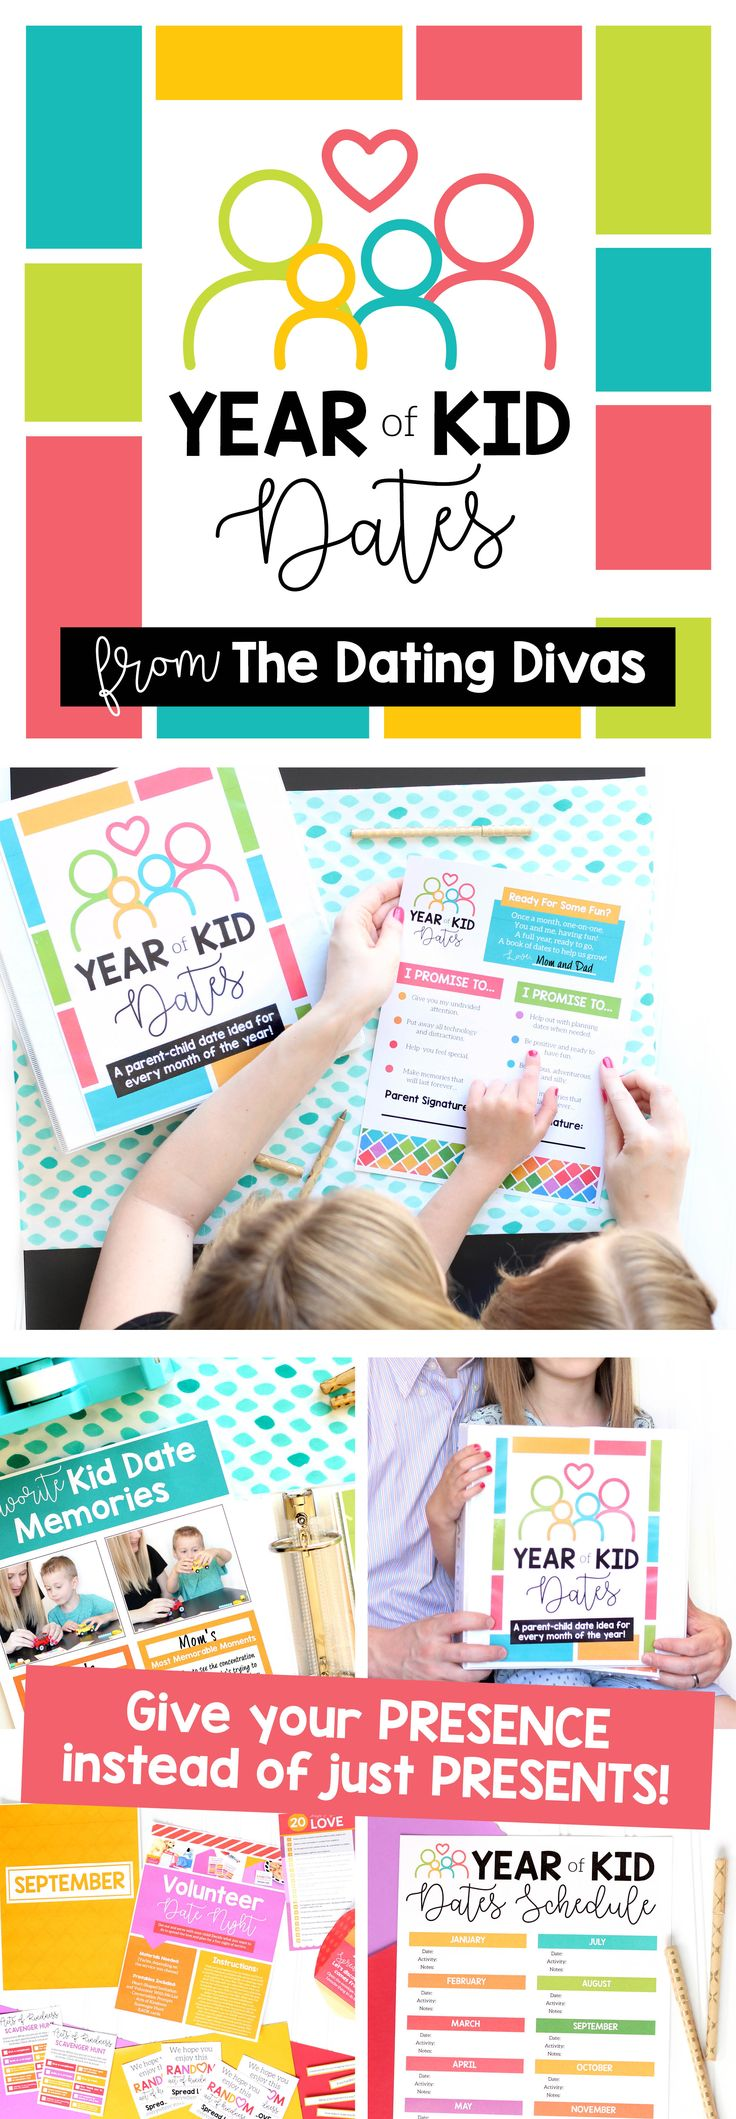 Year of Kid Dates Gift for Kids- 12 parent-child date ideas! One for every month of the whole year! LOVE THIS!!!